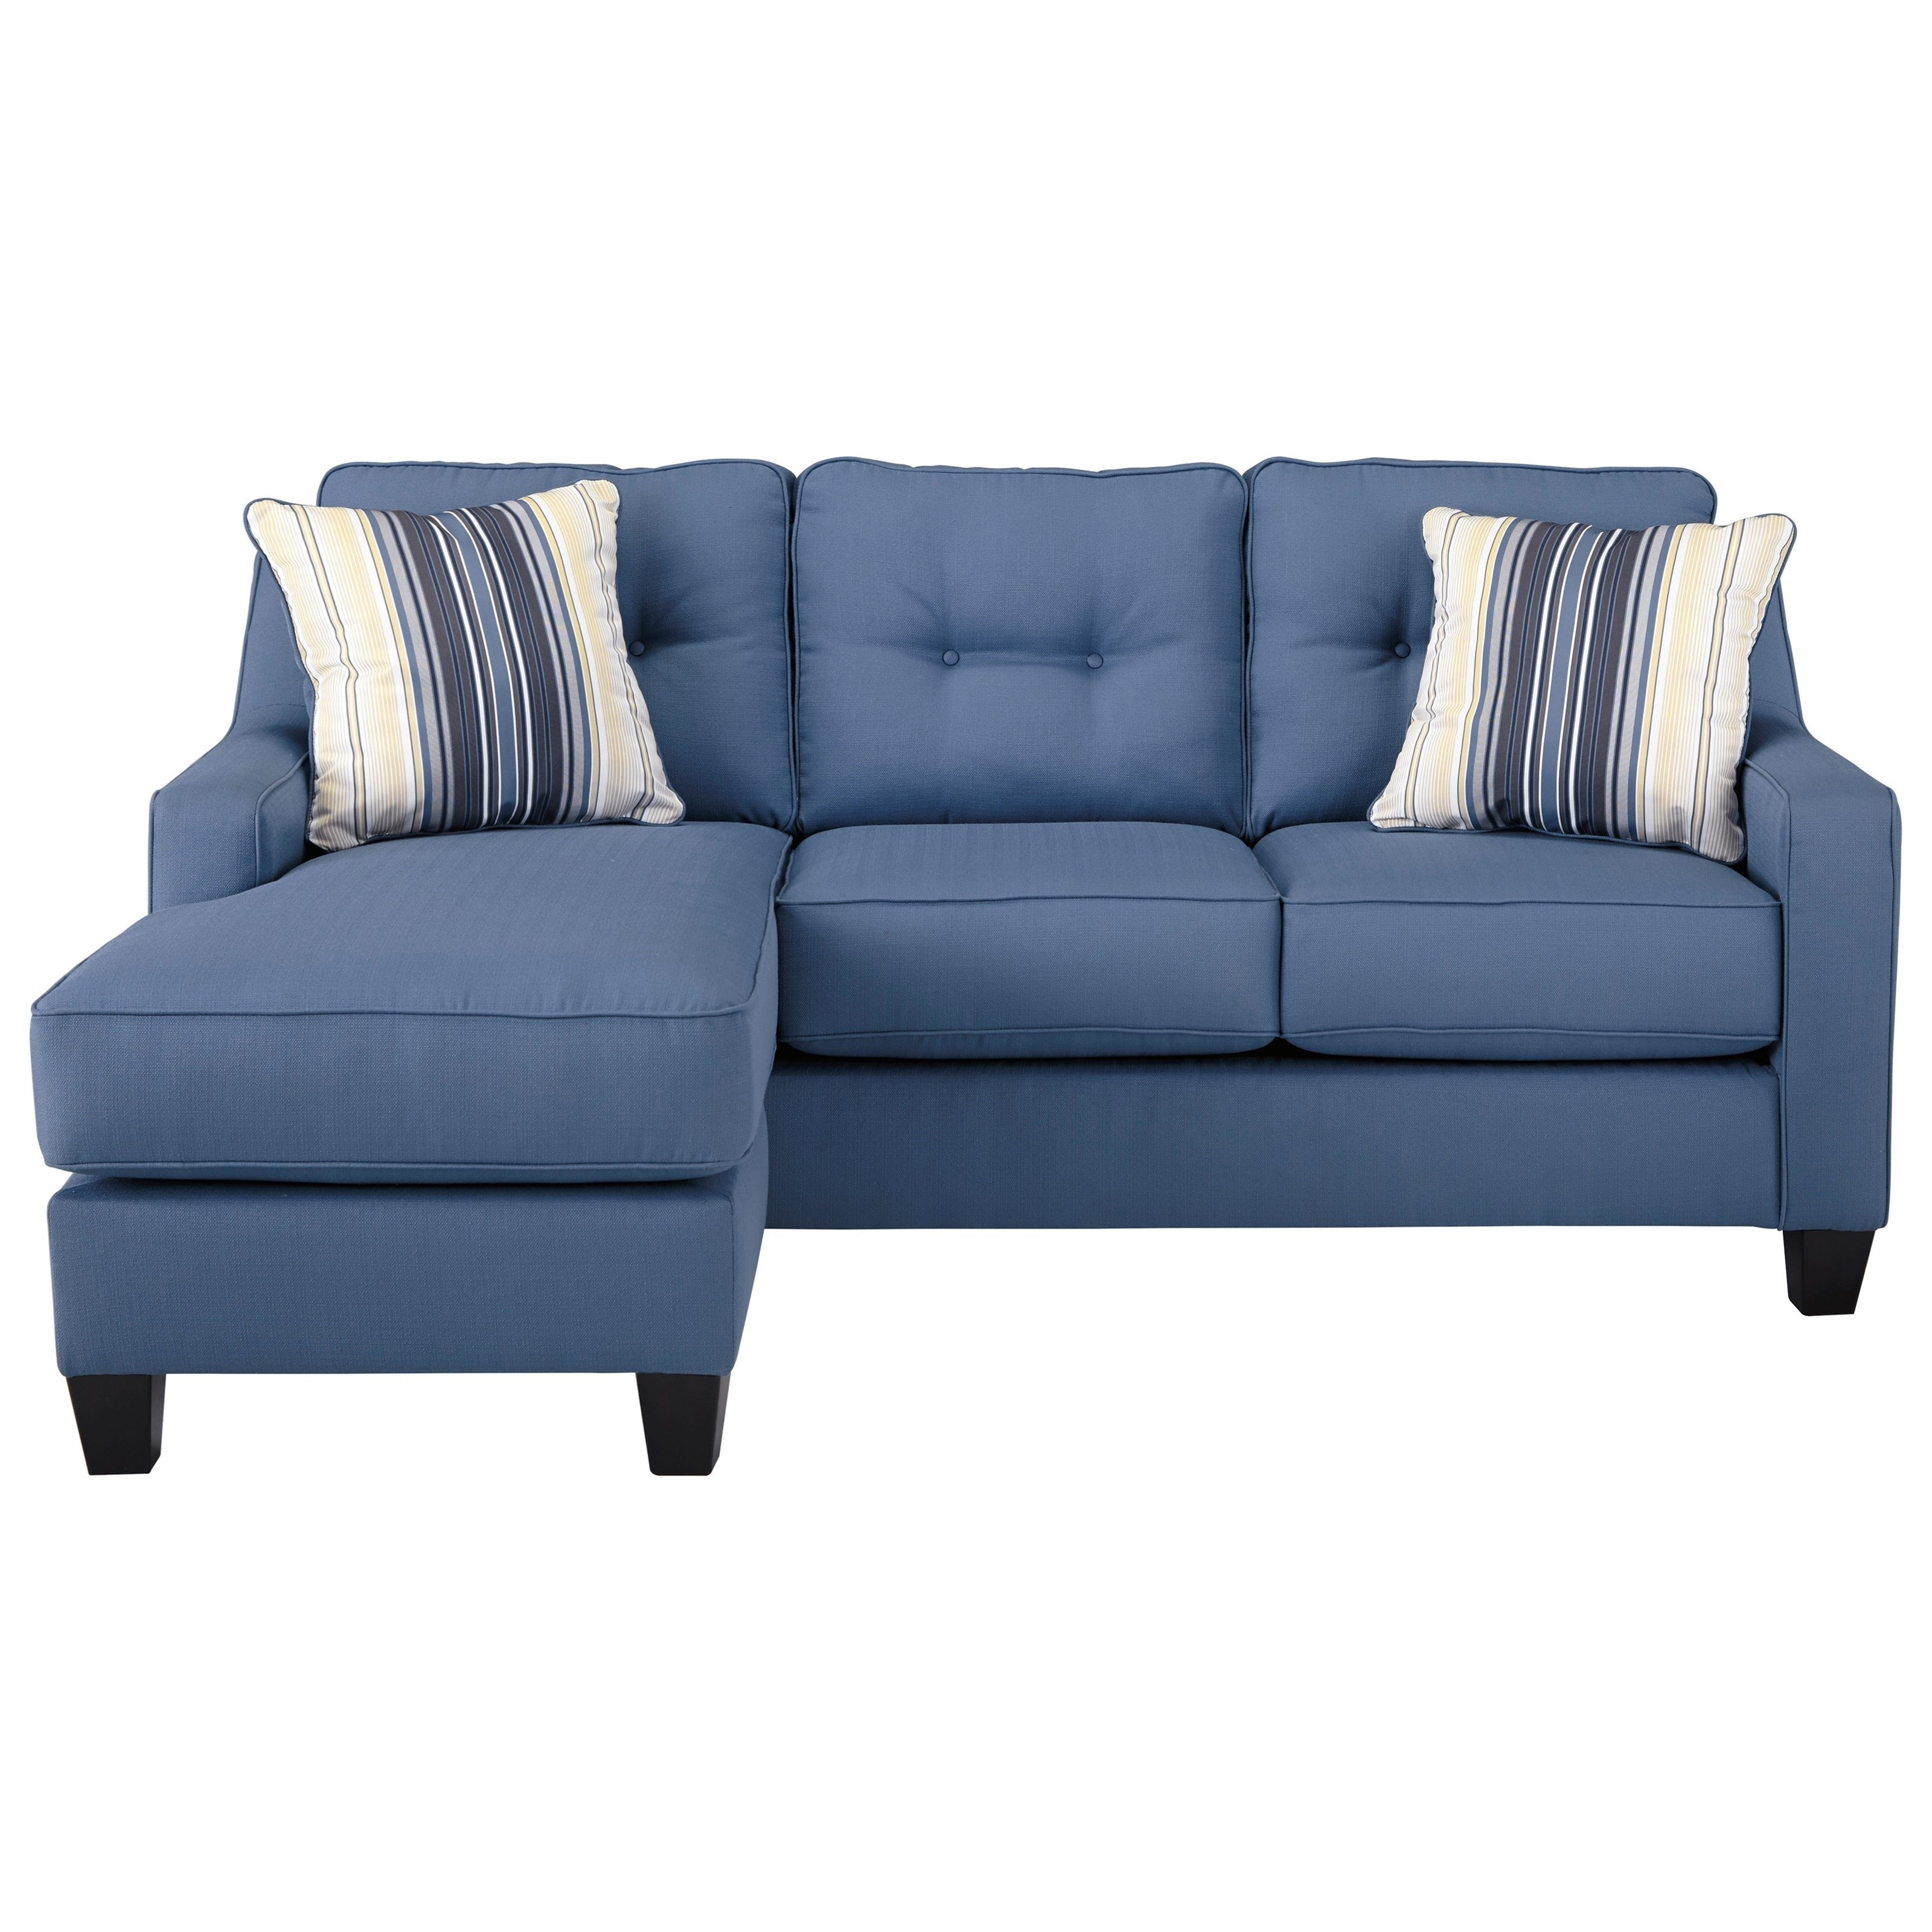 Sofa Chaise Sleepers Inside Most Up To Date Benchcraft Aldie Nuvella Queen Sofa Chaise Sleeper In Performance (View 4 of 15)